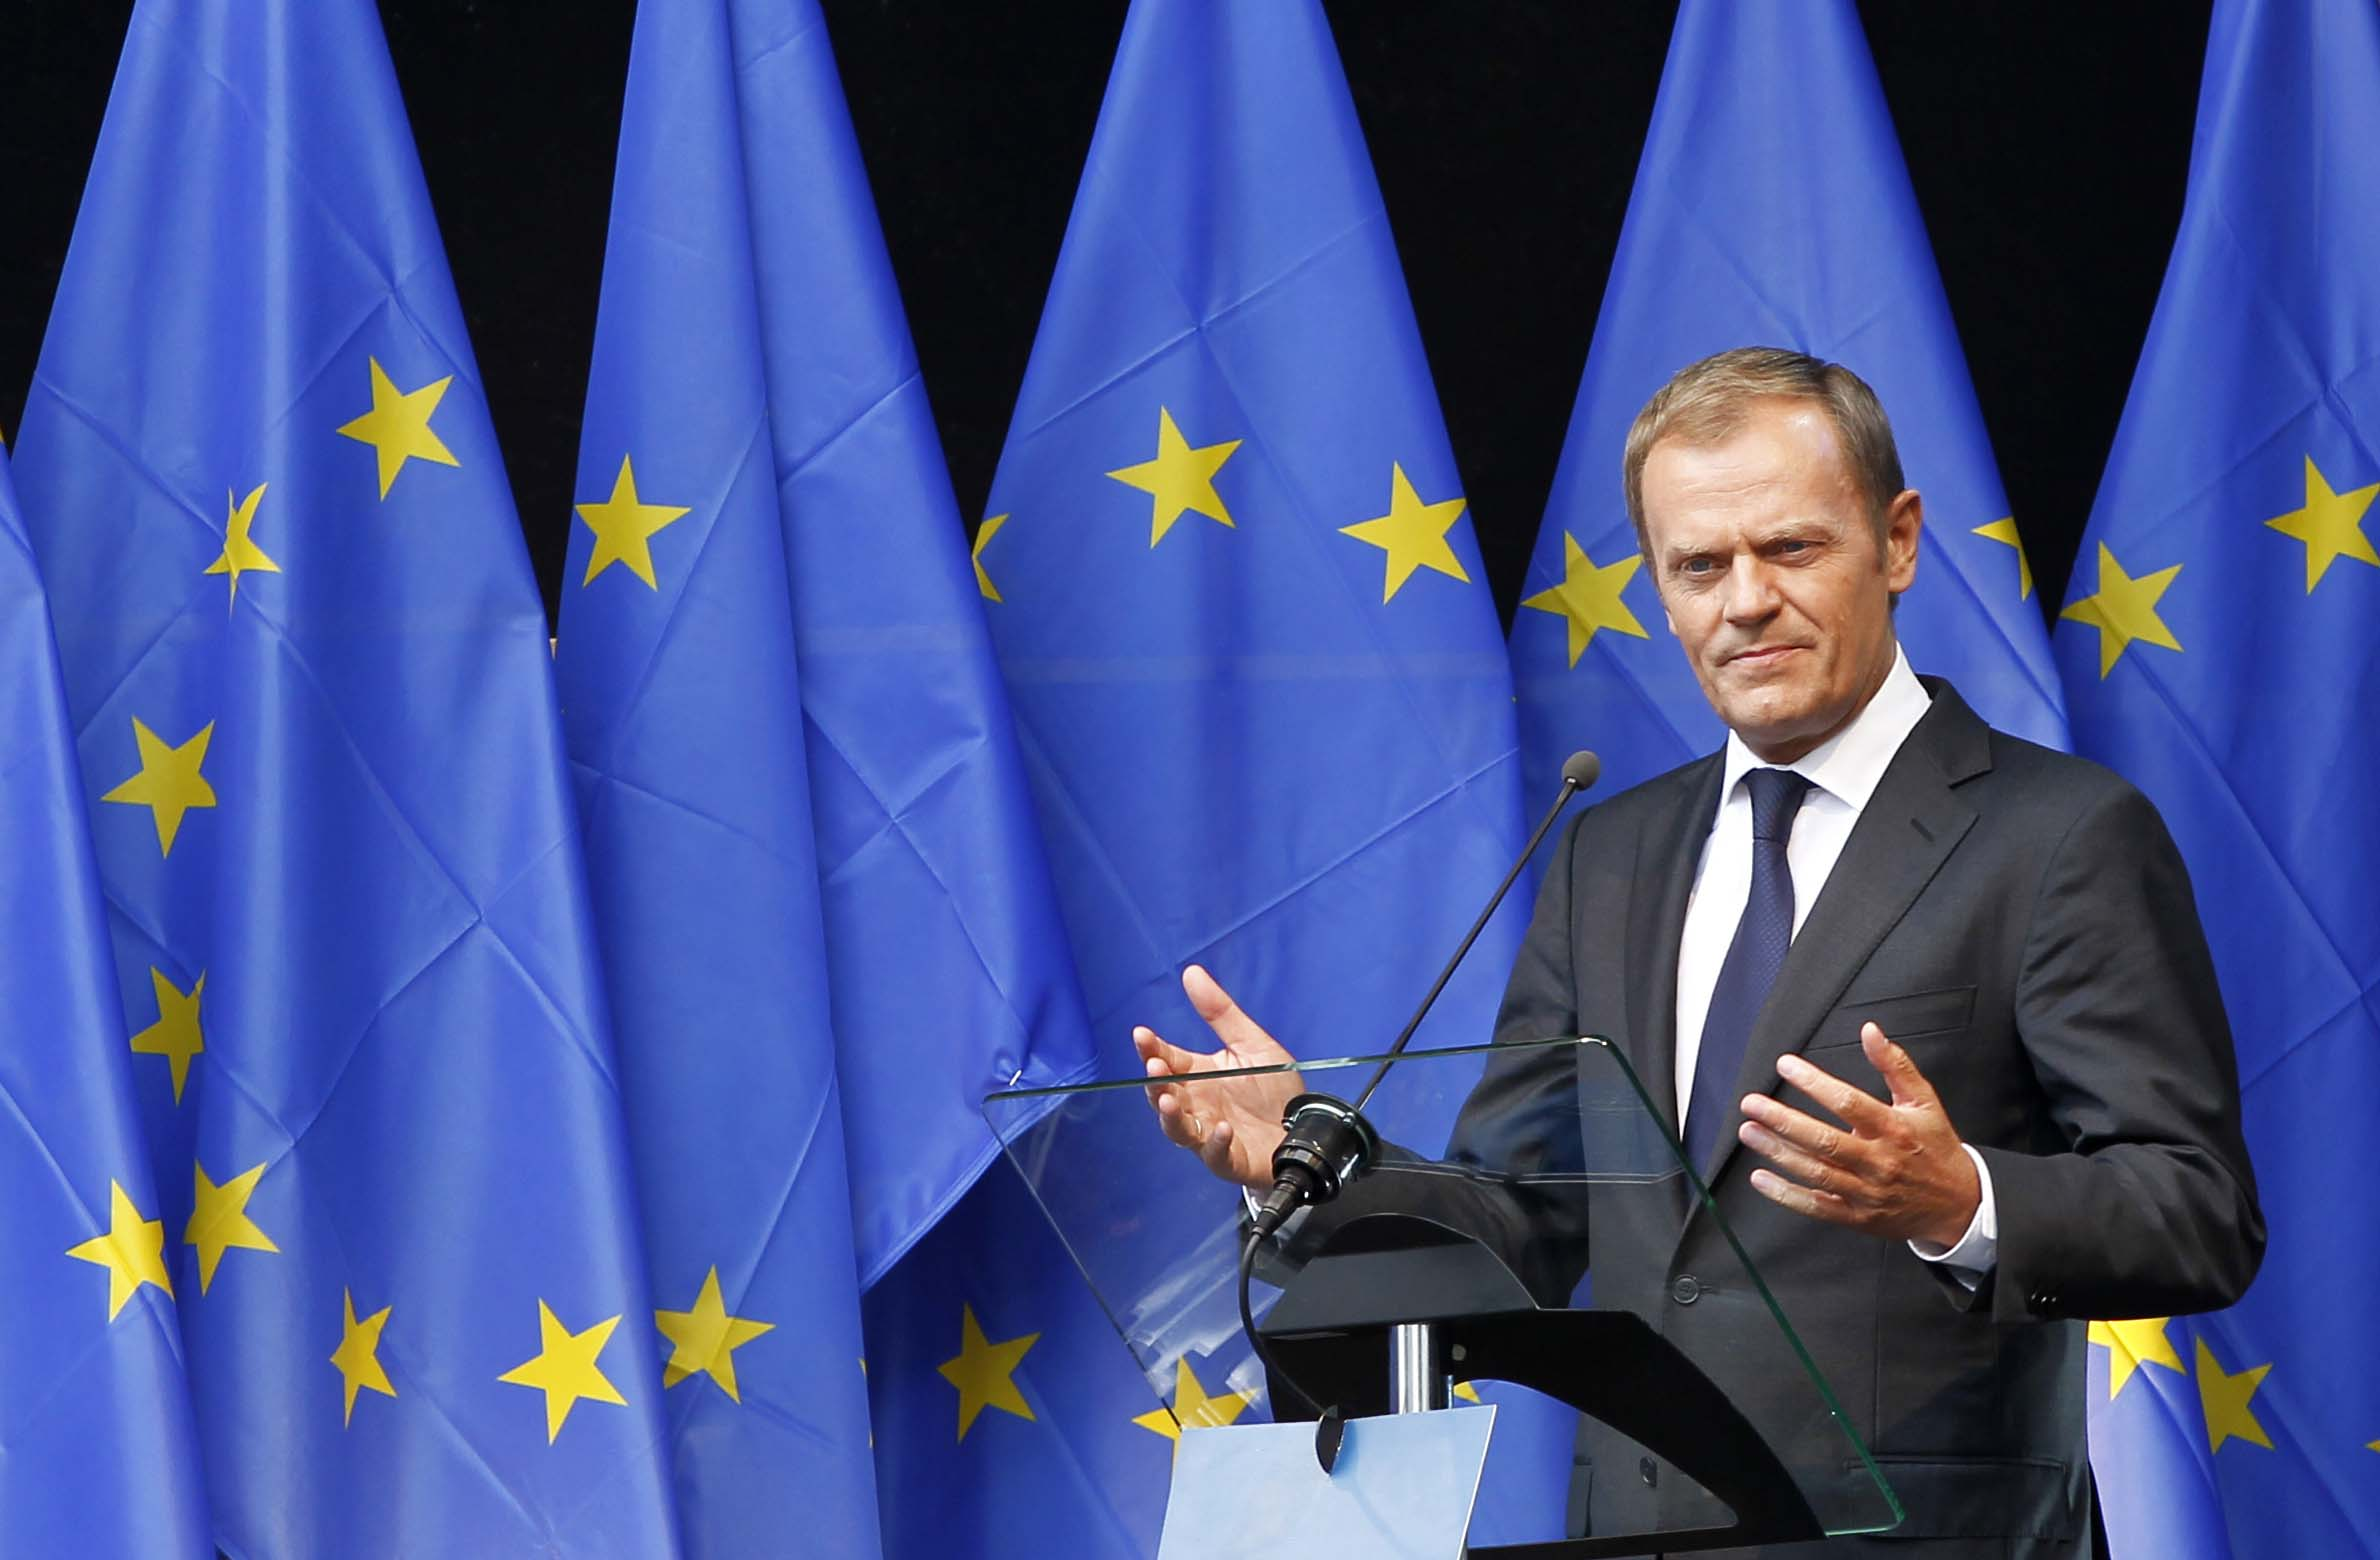 EU's Tusk calls on all member states to help rebuild Notre Dame